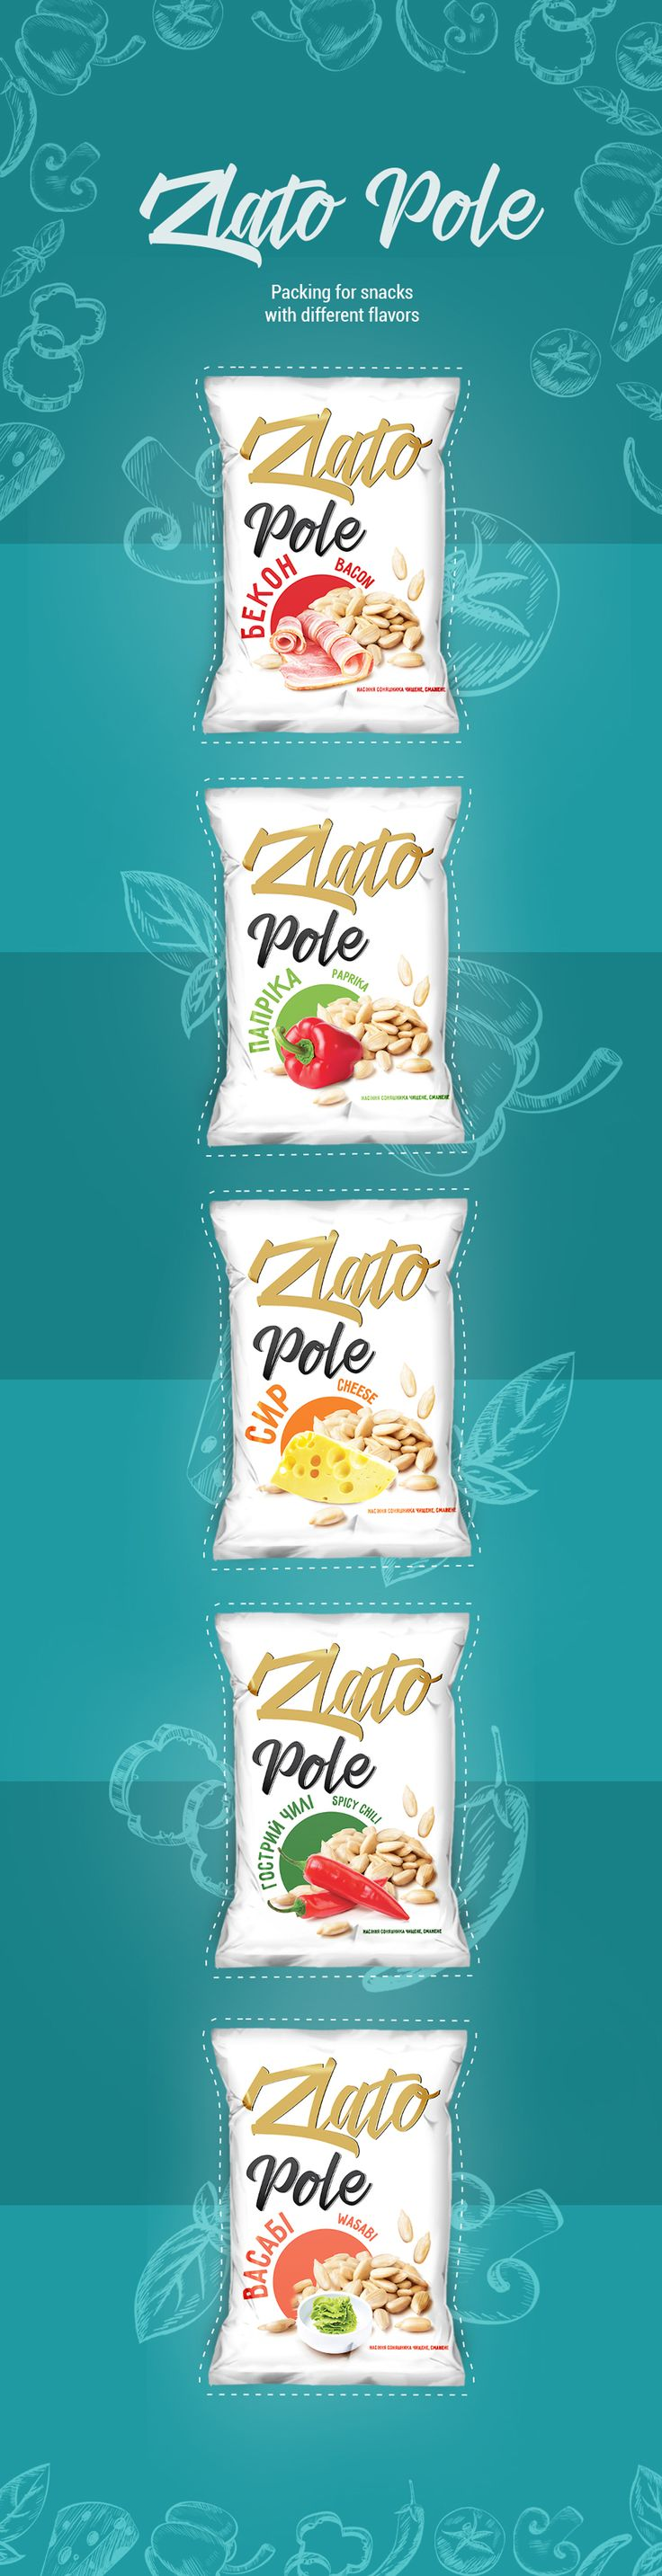 Zlato Pole snacks by SOT B&D. Source: Behance. #SFields99 #packaging #design #inspiration #design #snacking #bags #branding